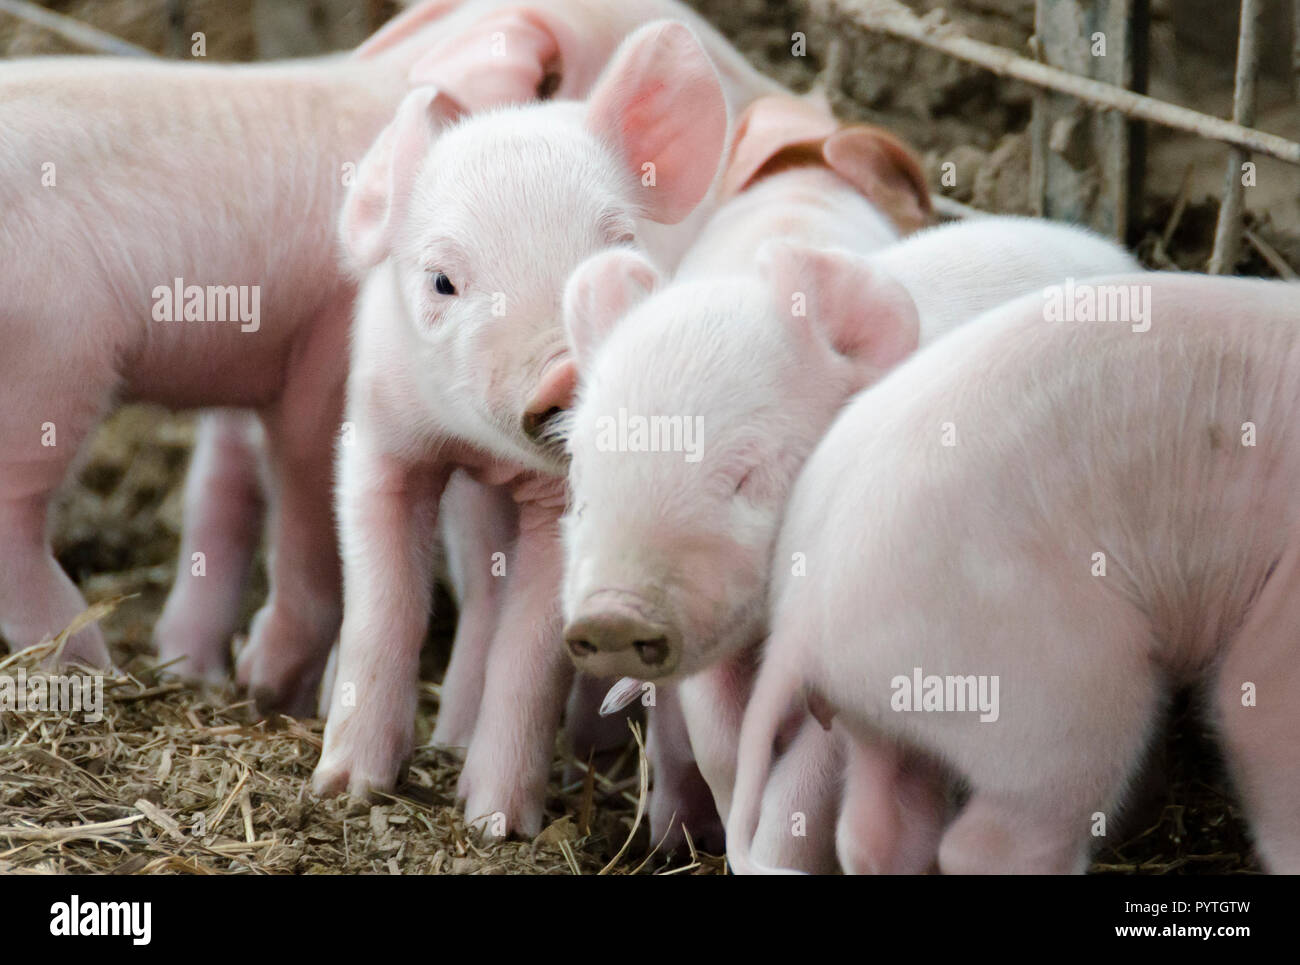 Closeup of a group of piglets huddled together in a barn - Stock Image